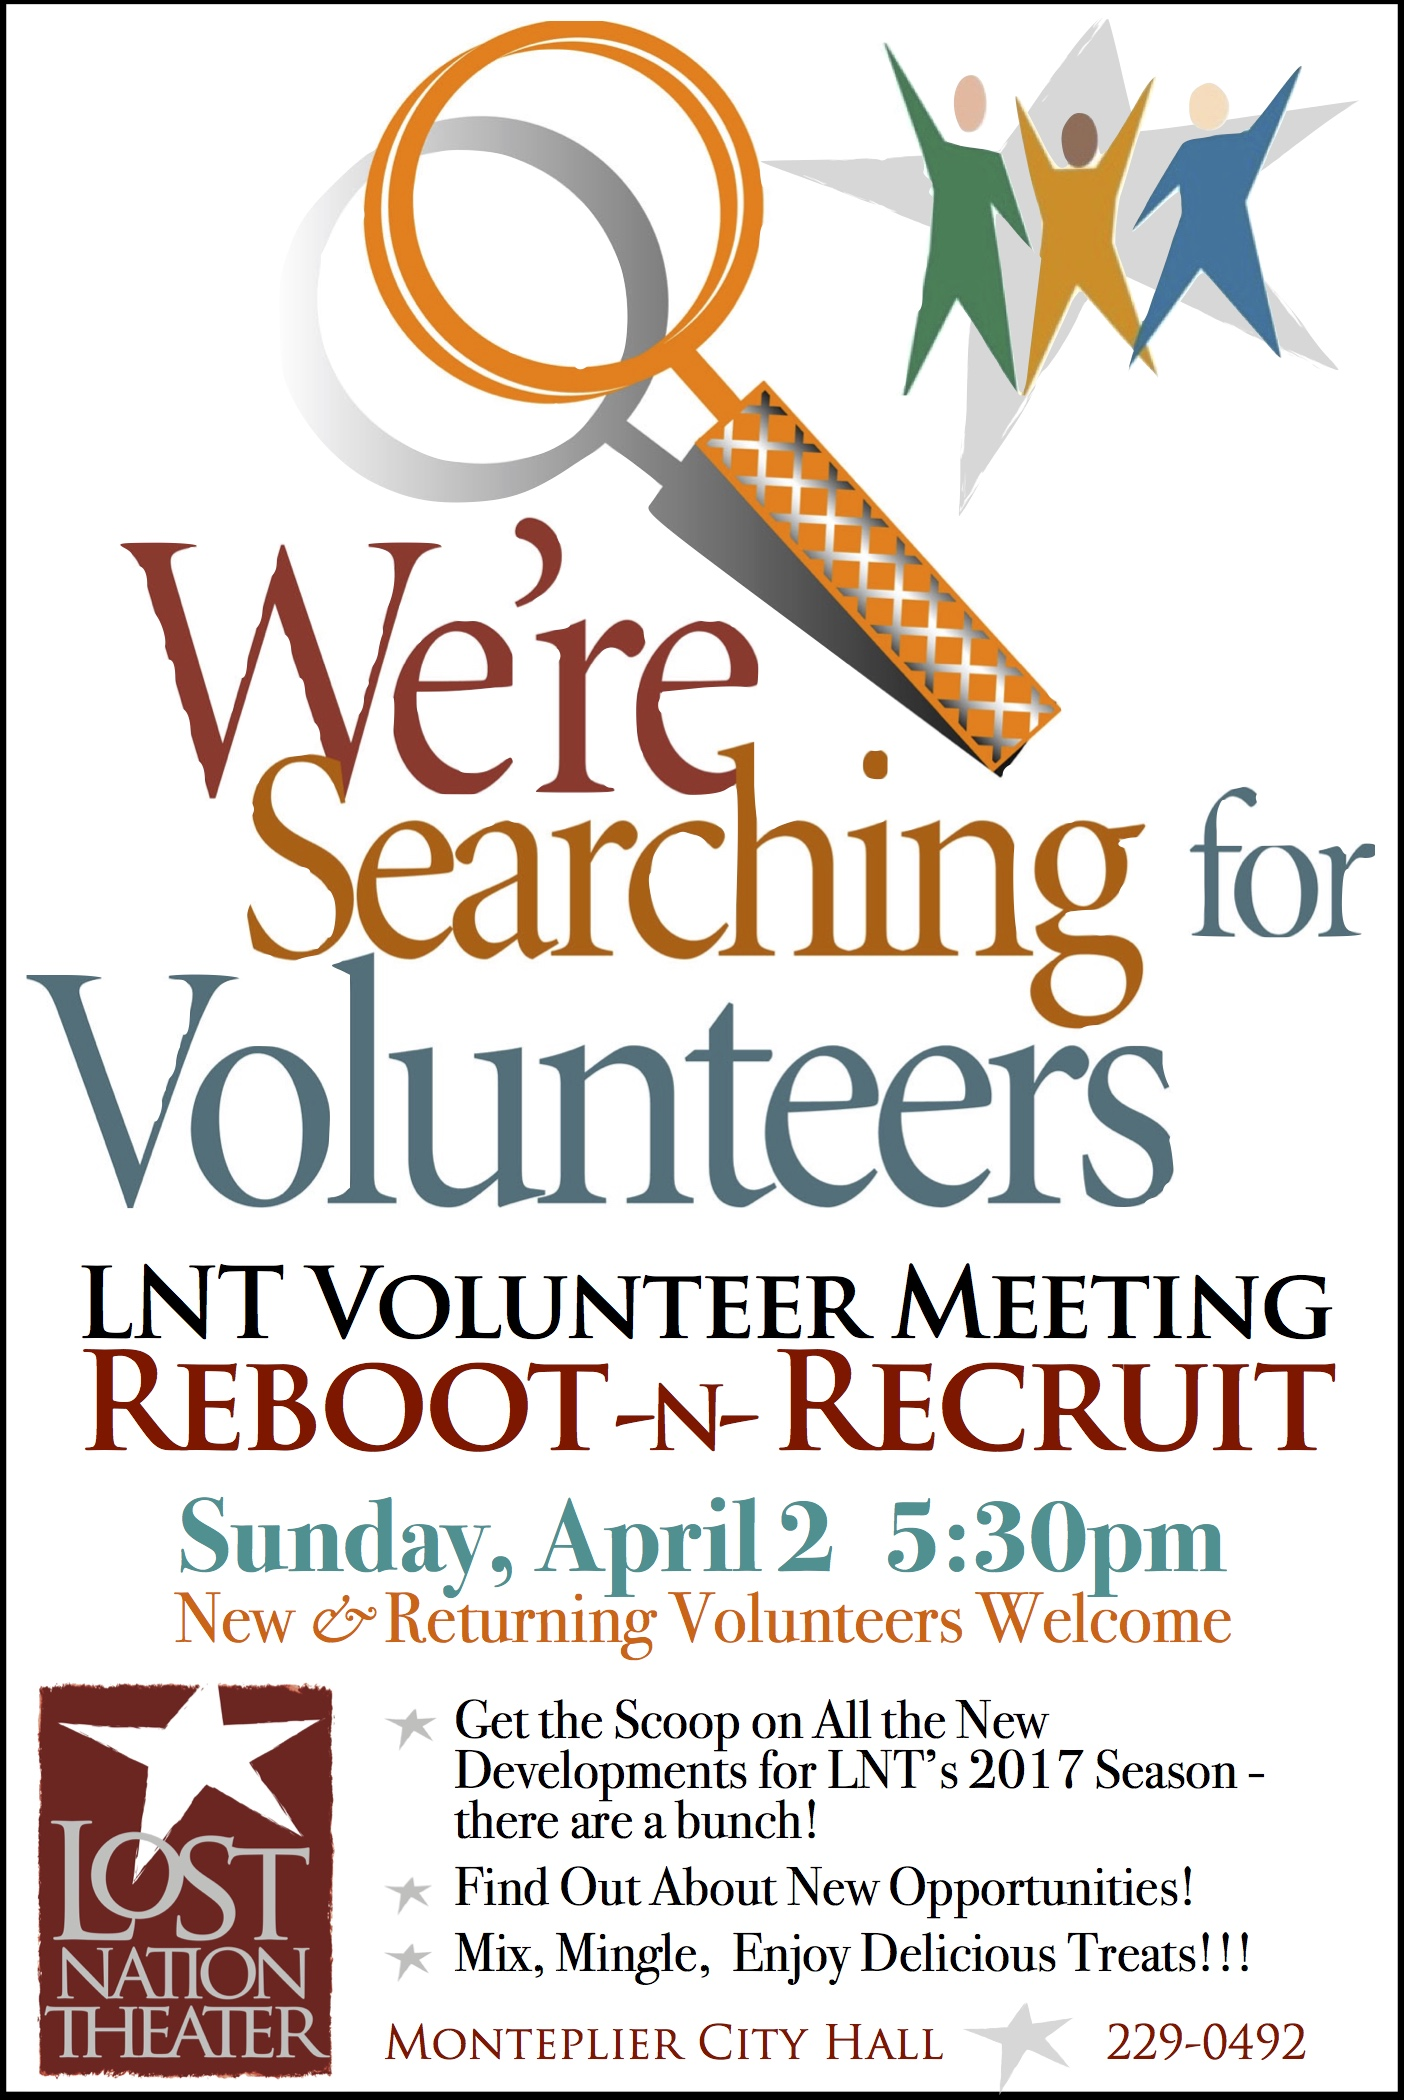 ad for LNT's volunteer meeting- we're searching for volunteers with spyglass